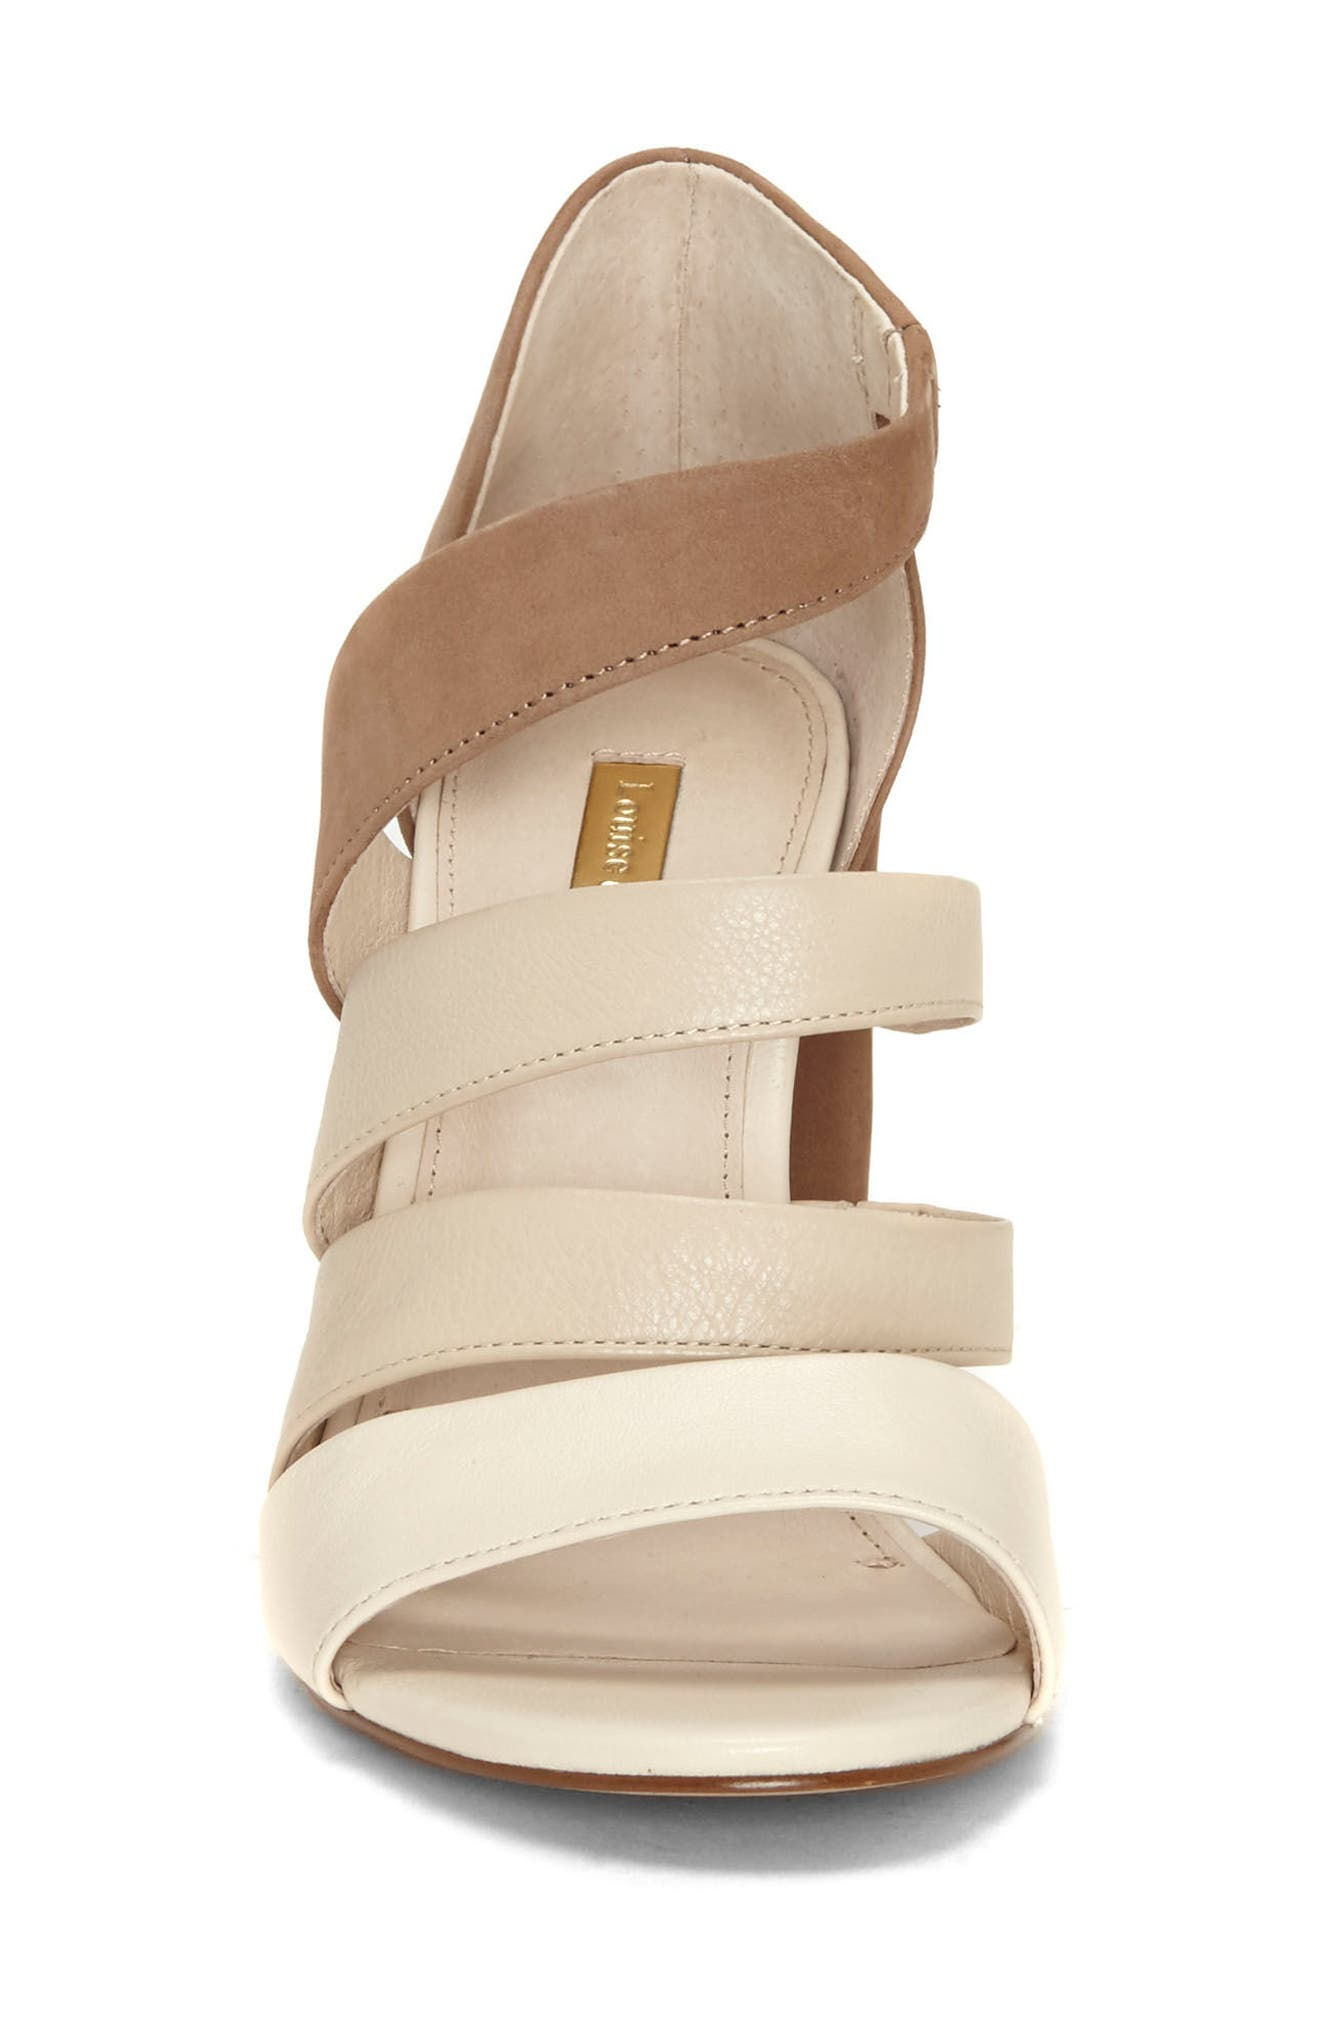 Kainey Strappy Sandal,                             Alternate thumbnail 8, color,